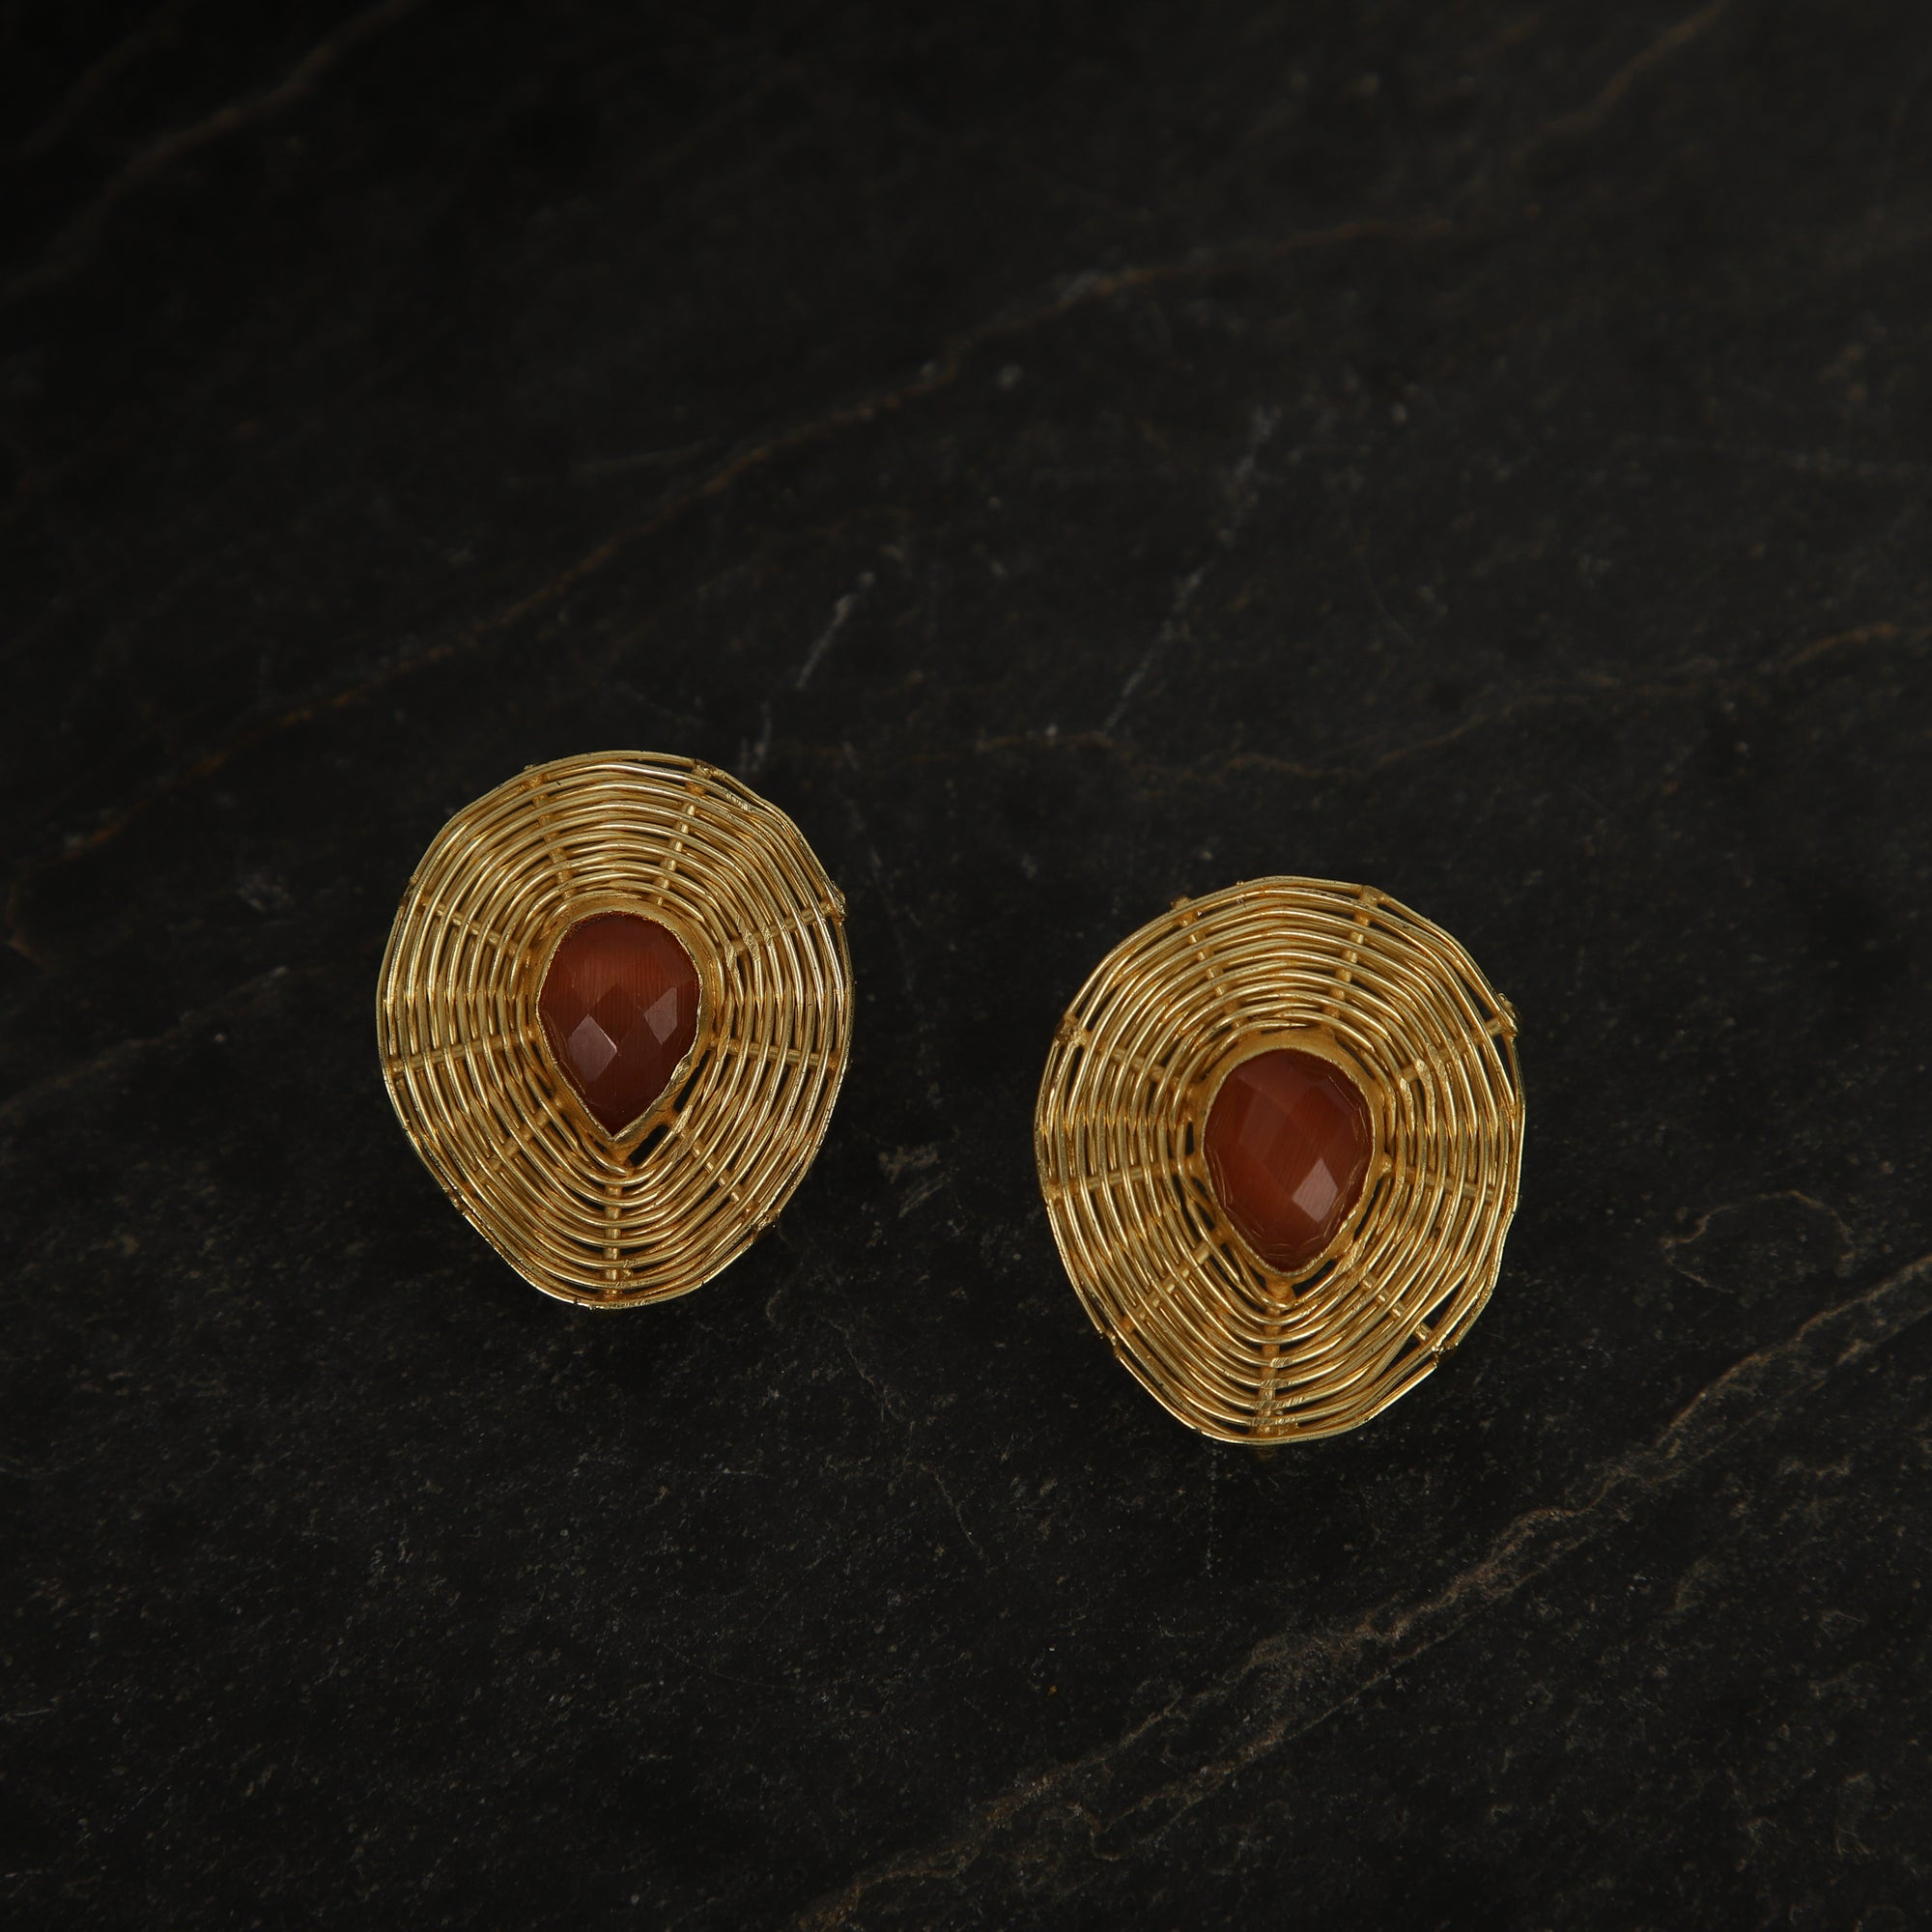 jewelry - berserk - Gold Plated Carnelian Teardrop Studs